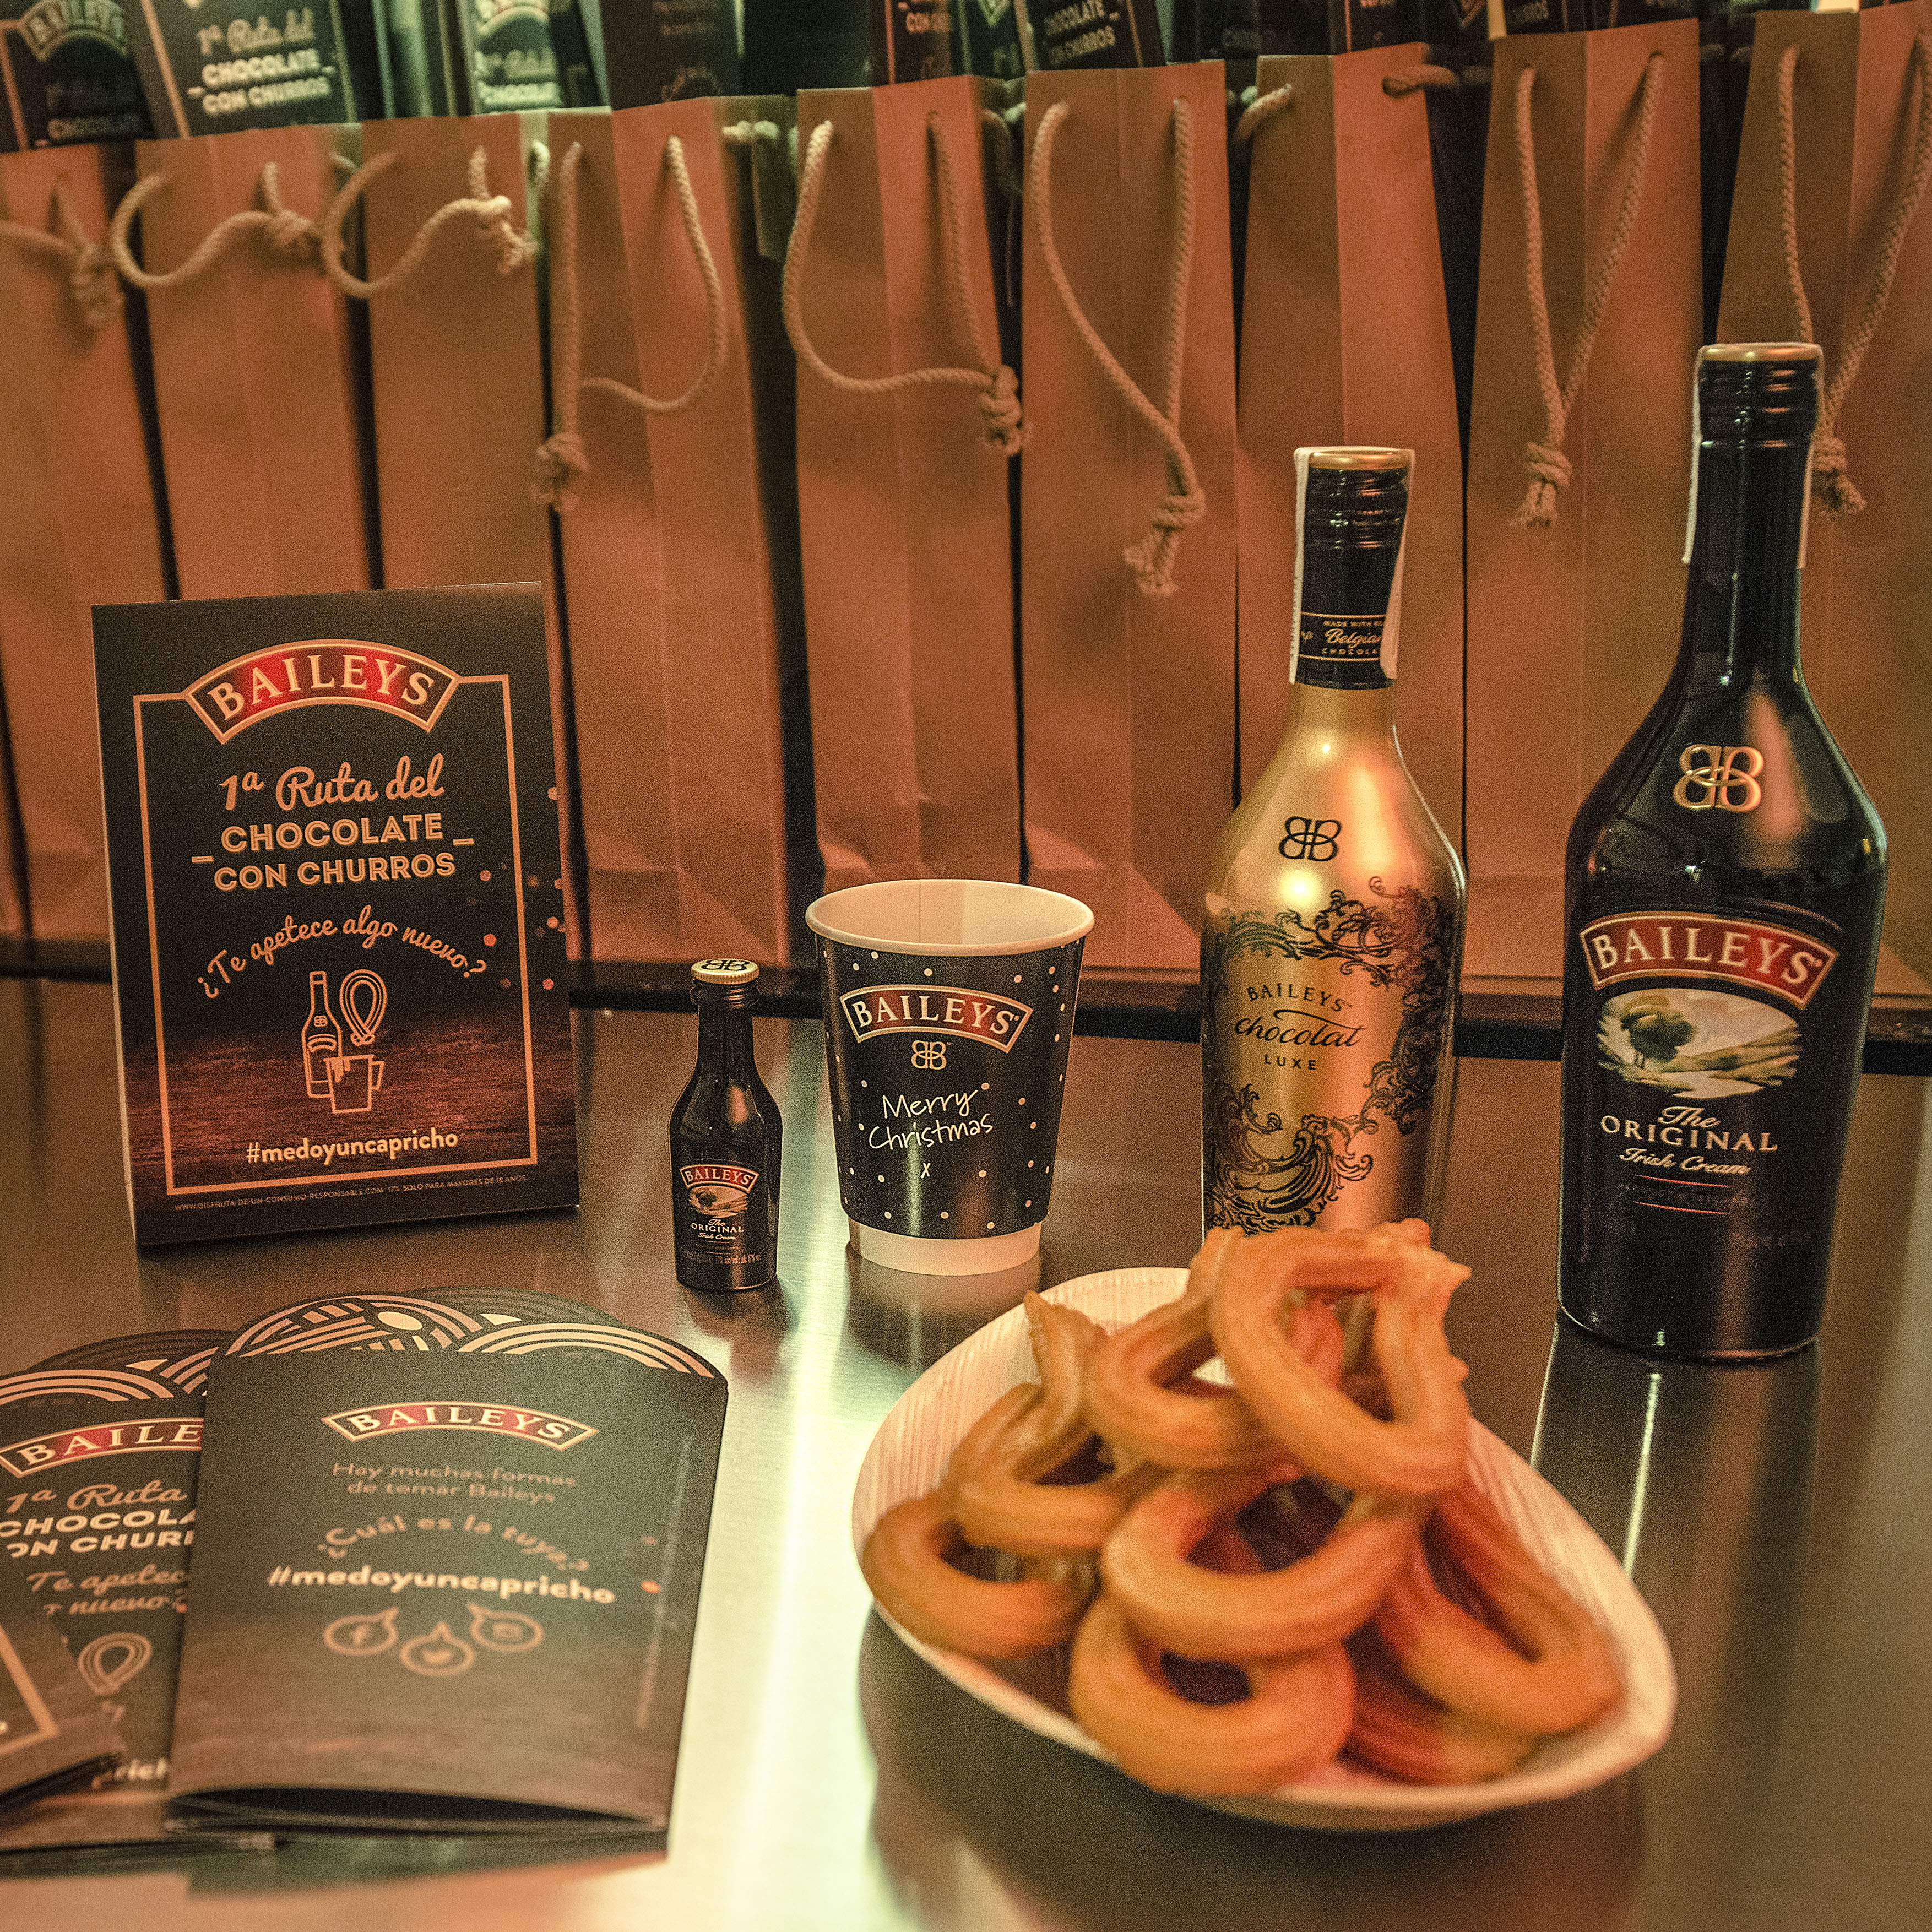 I Ruta Baileys de chocolate con churros en Madrid